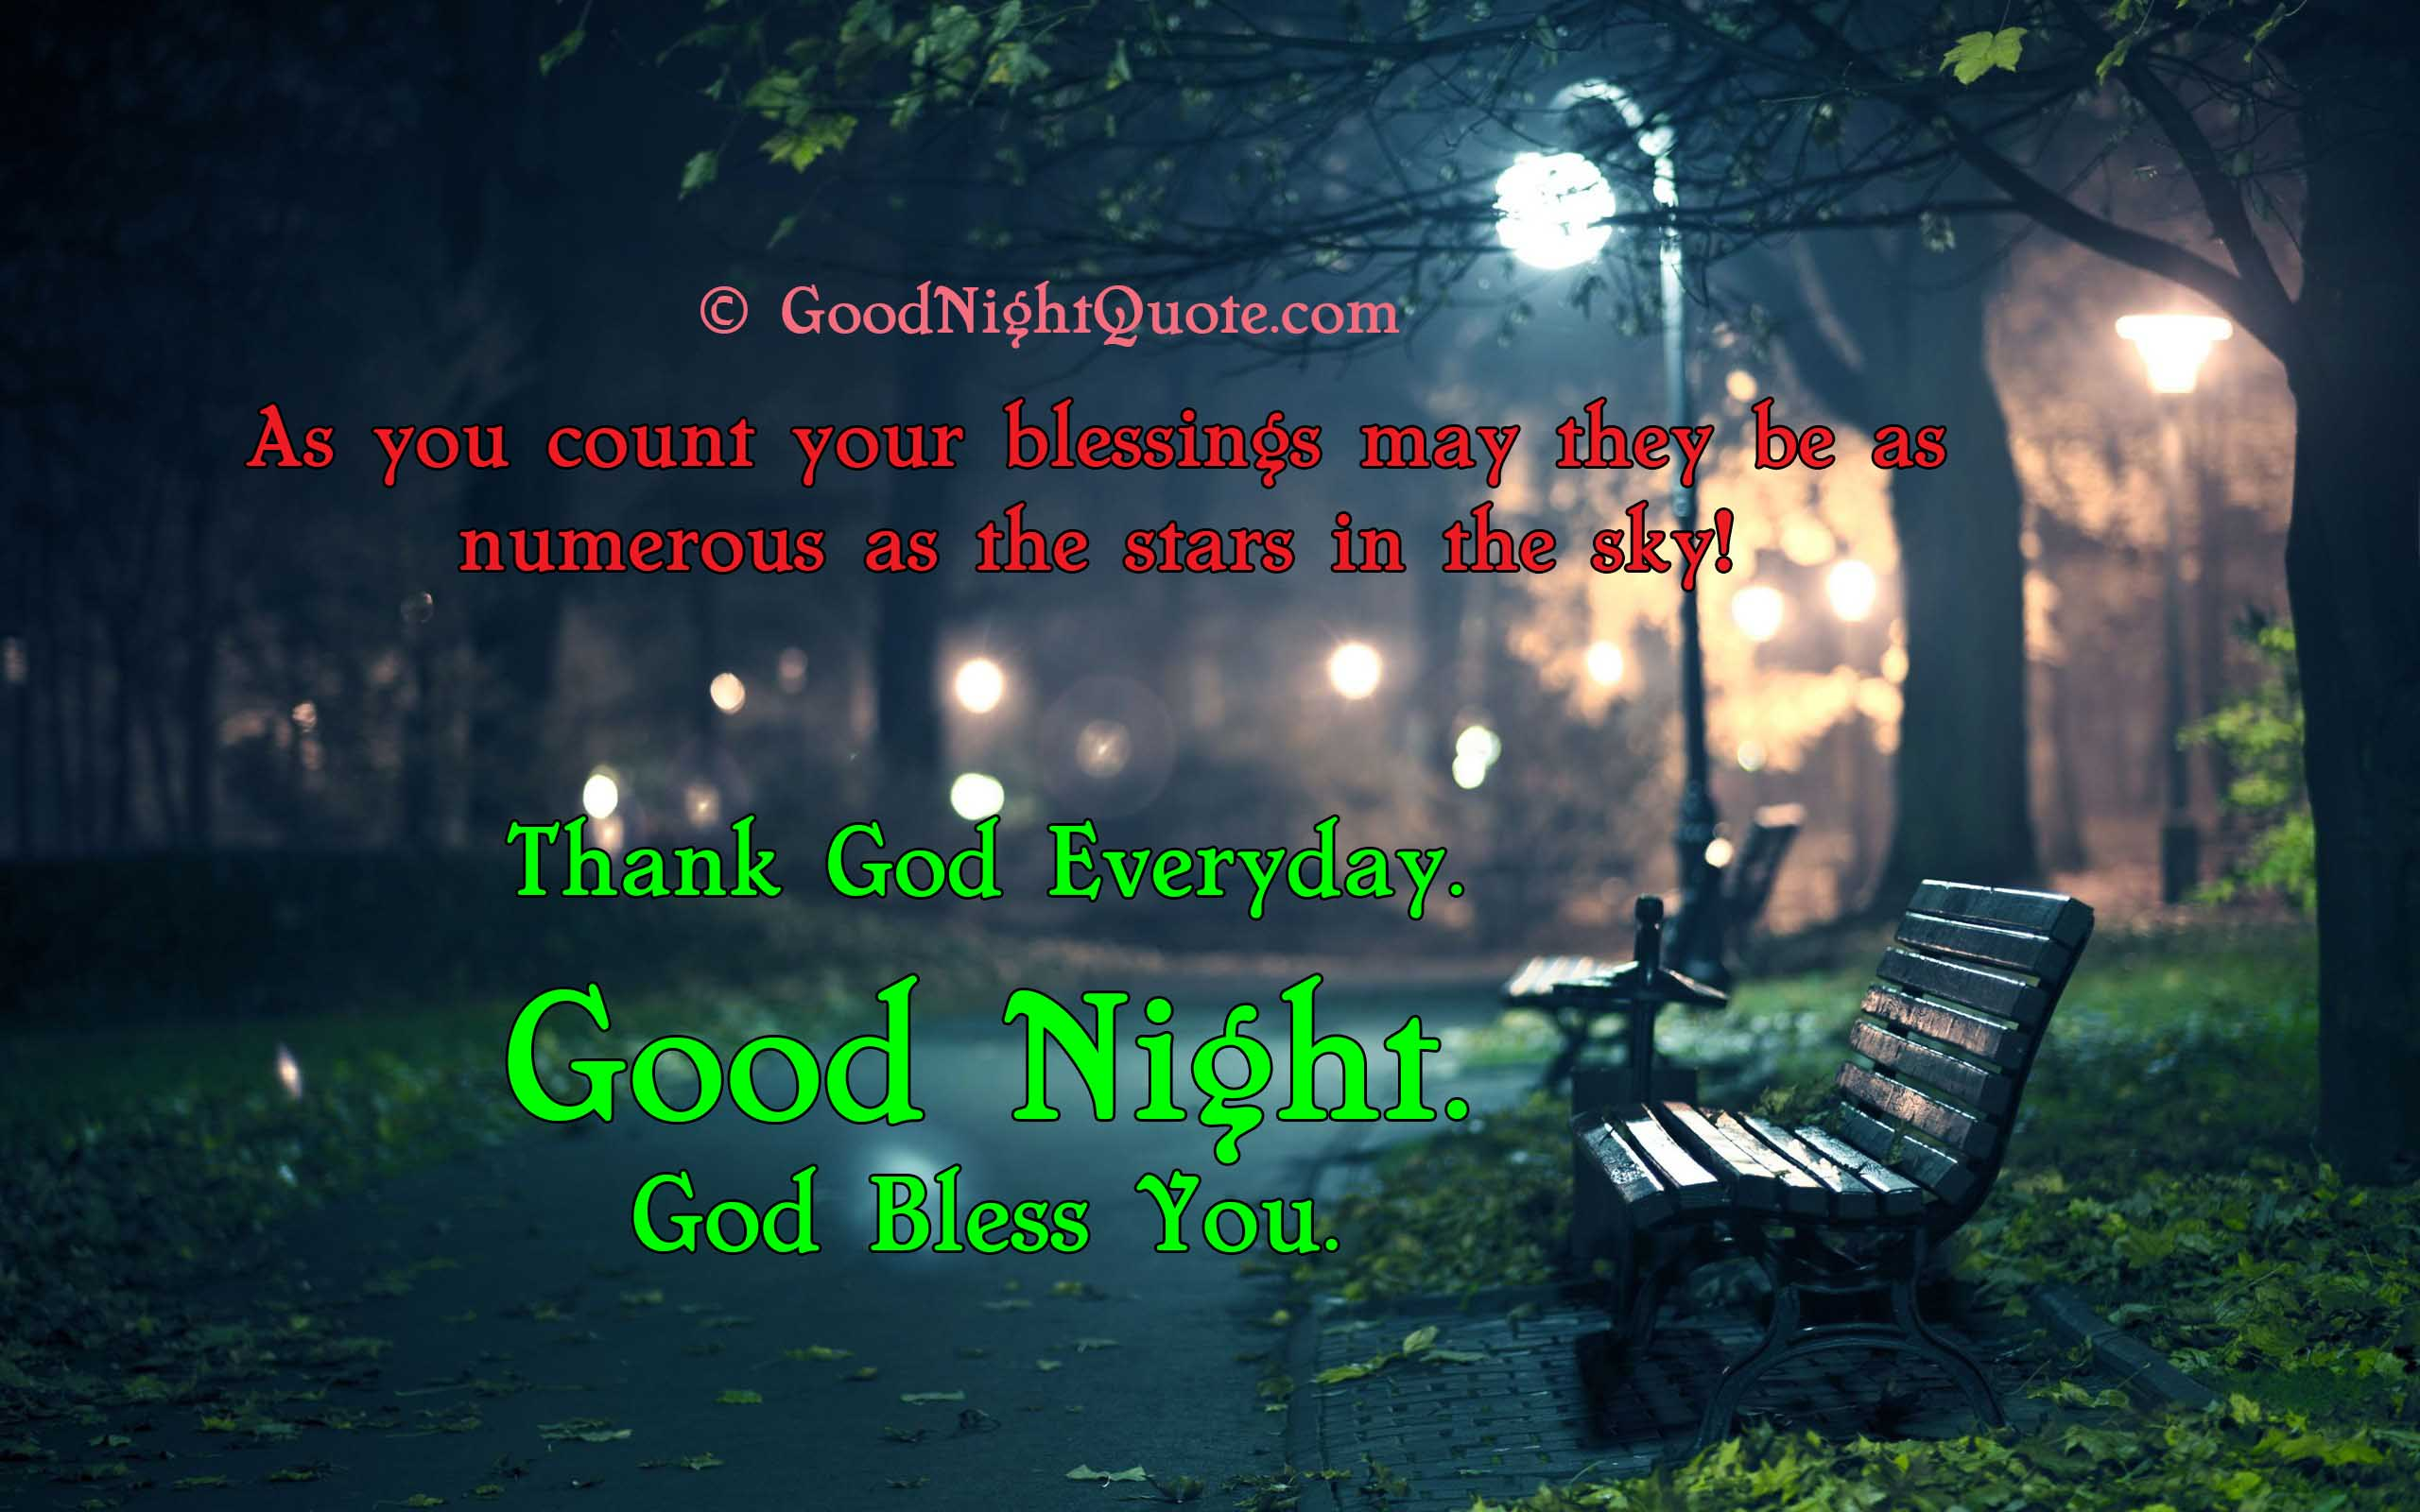 Good Quotes Good Night  Sweet Dreams  God Bless You Prayer Quotes  Good